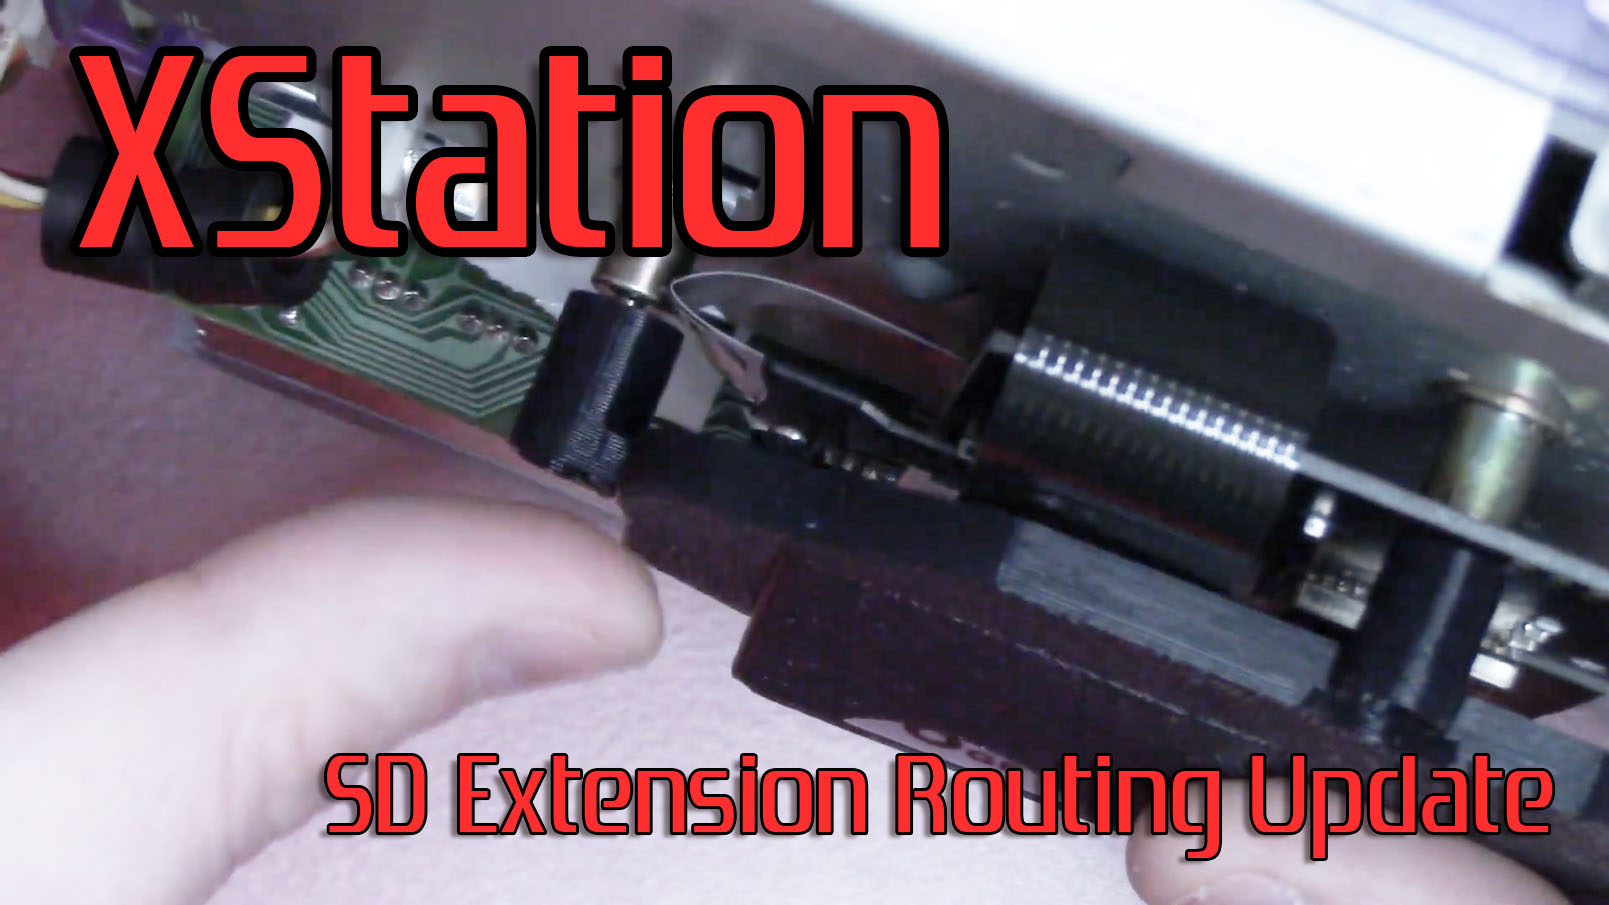 XStation SD Mount – New Extension Routing Suggestion